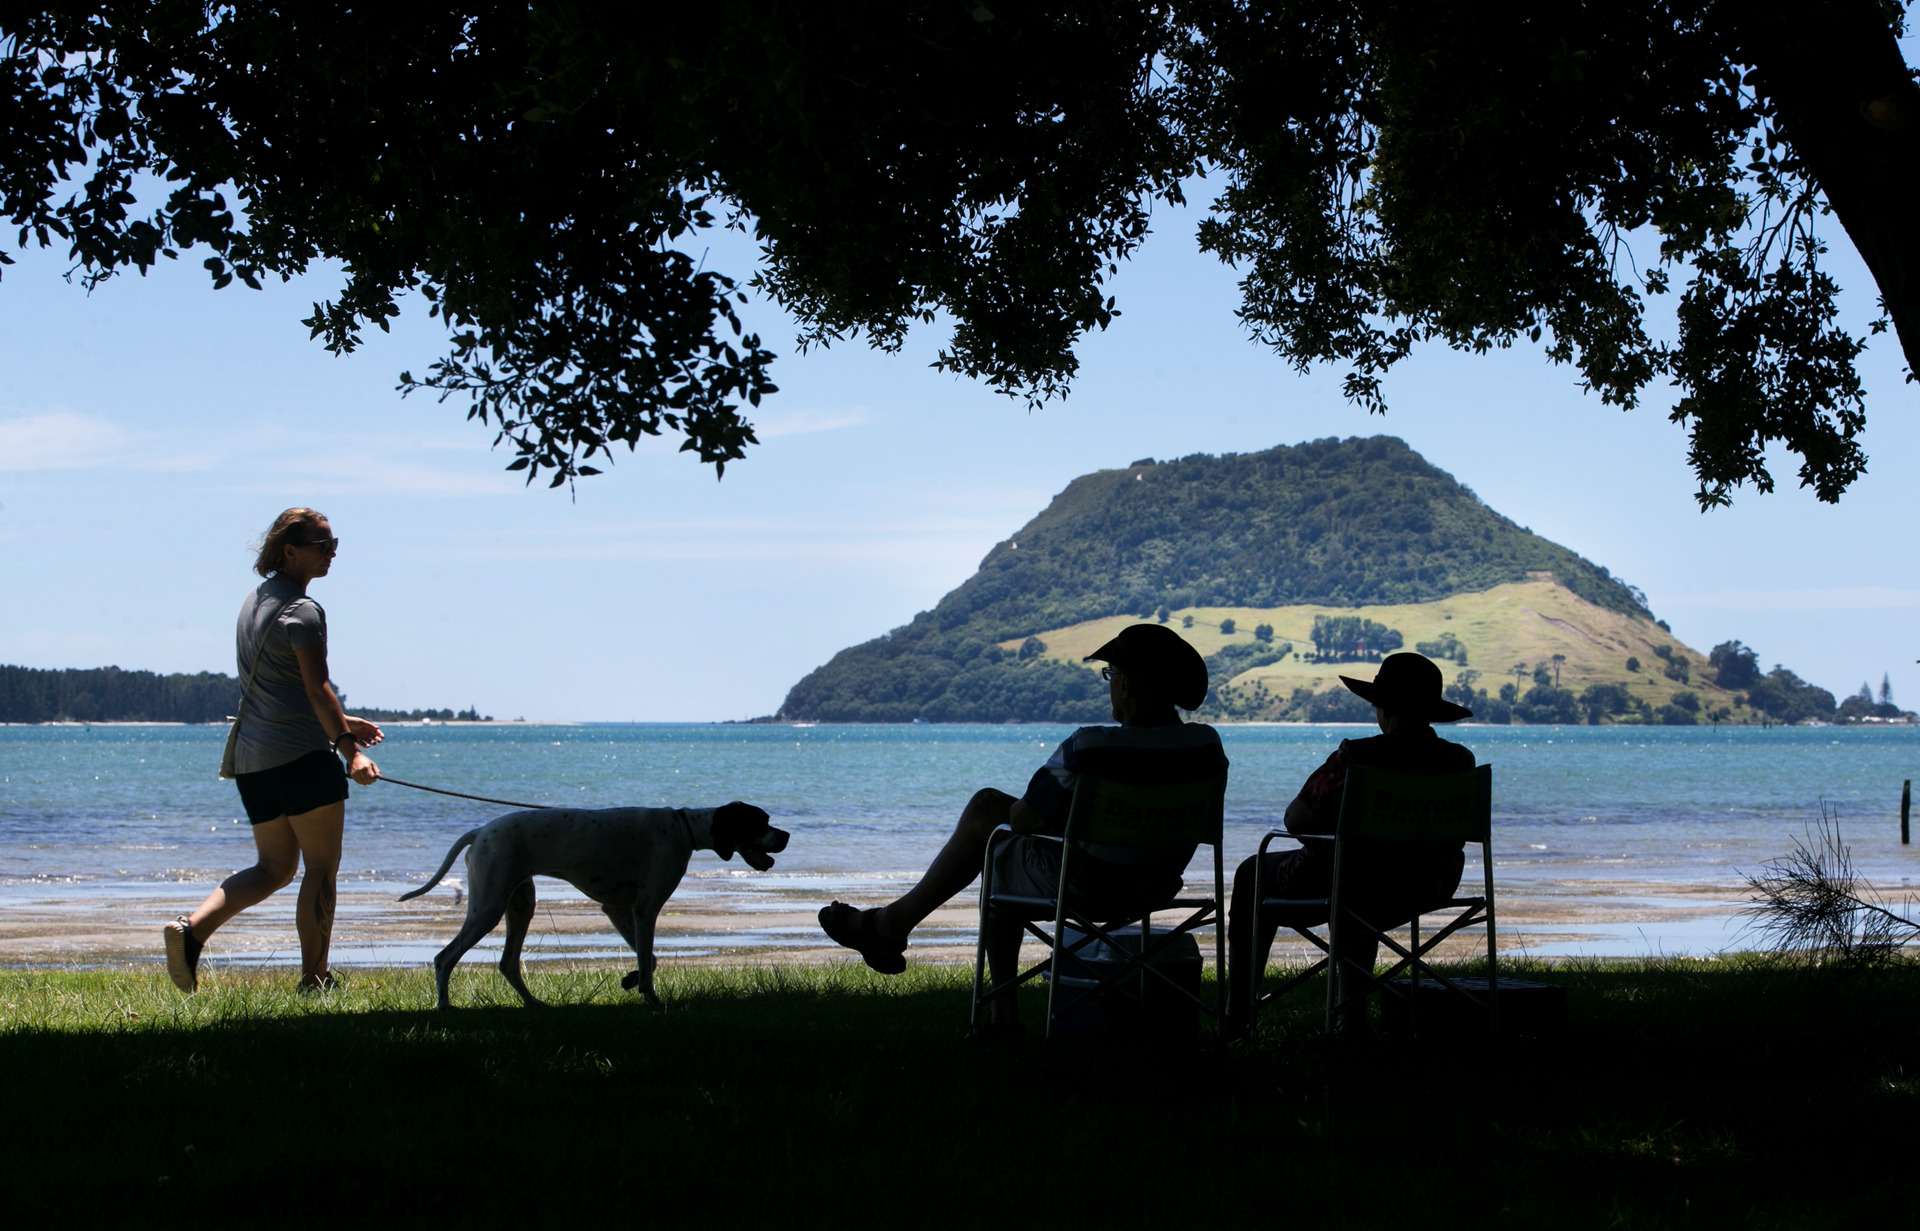 Roll on summer in New Zealand: warmth, humidity here until April